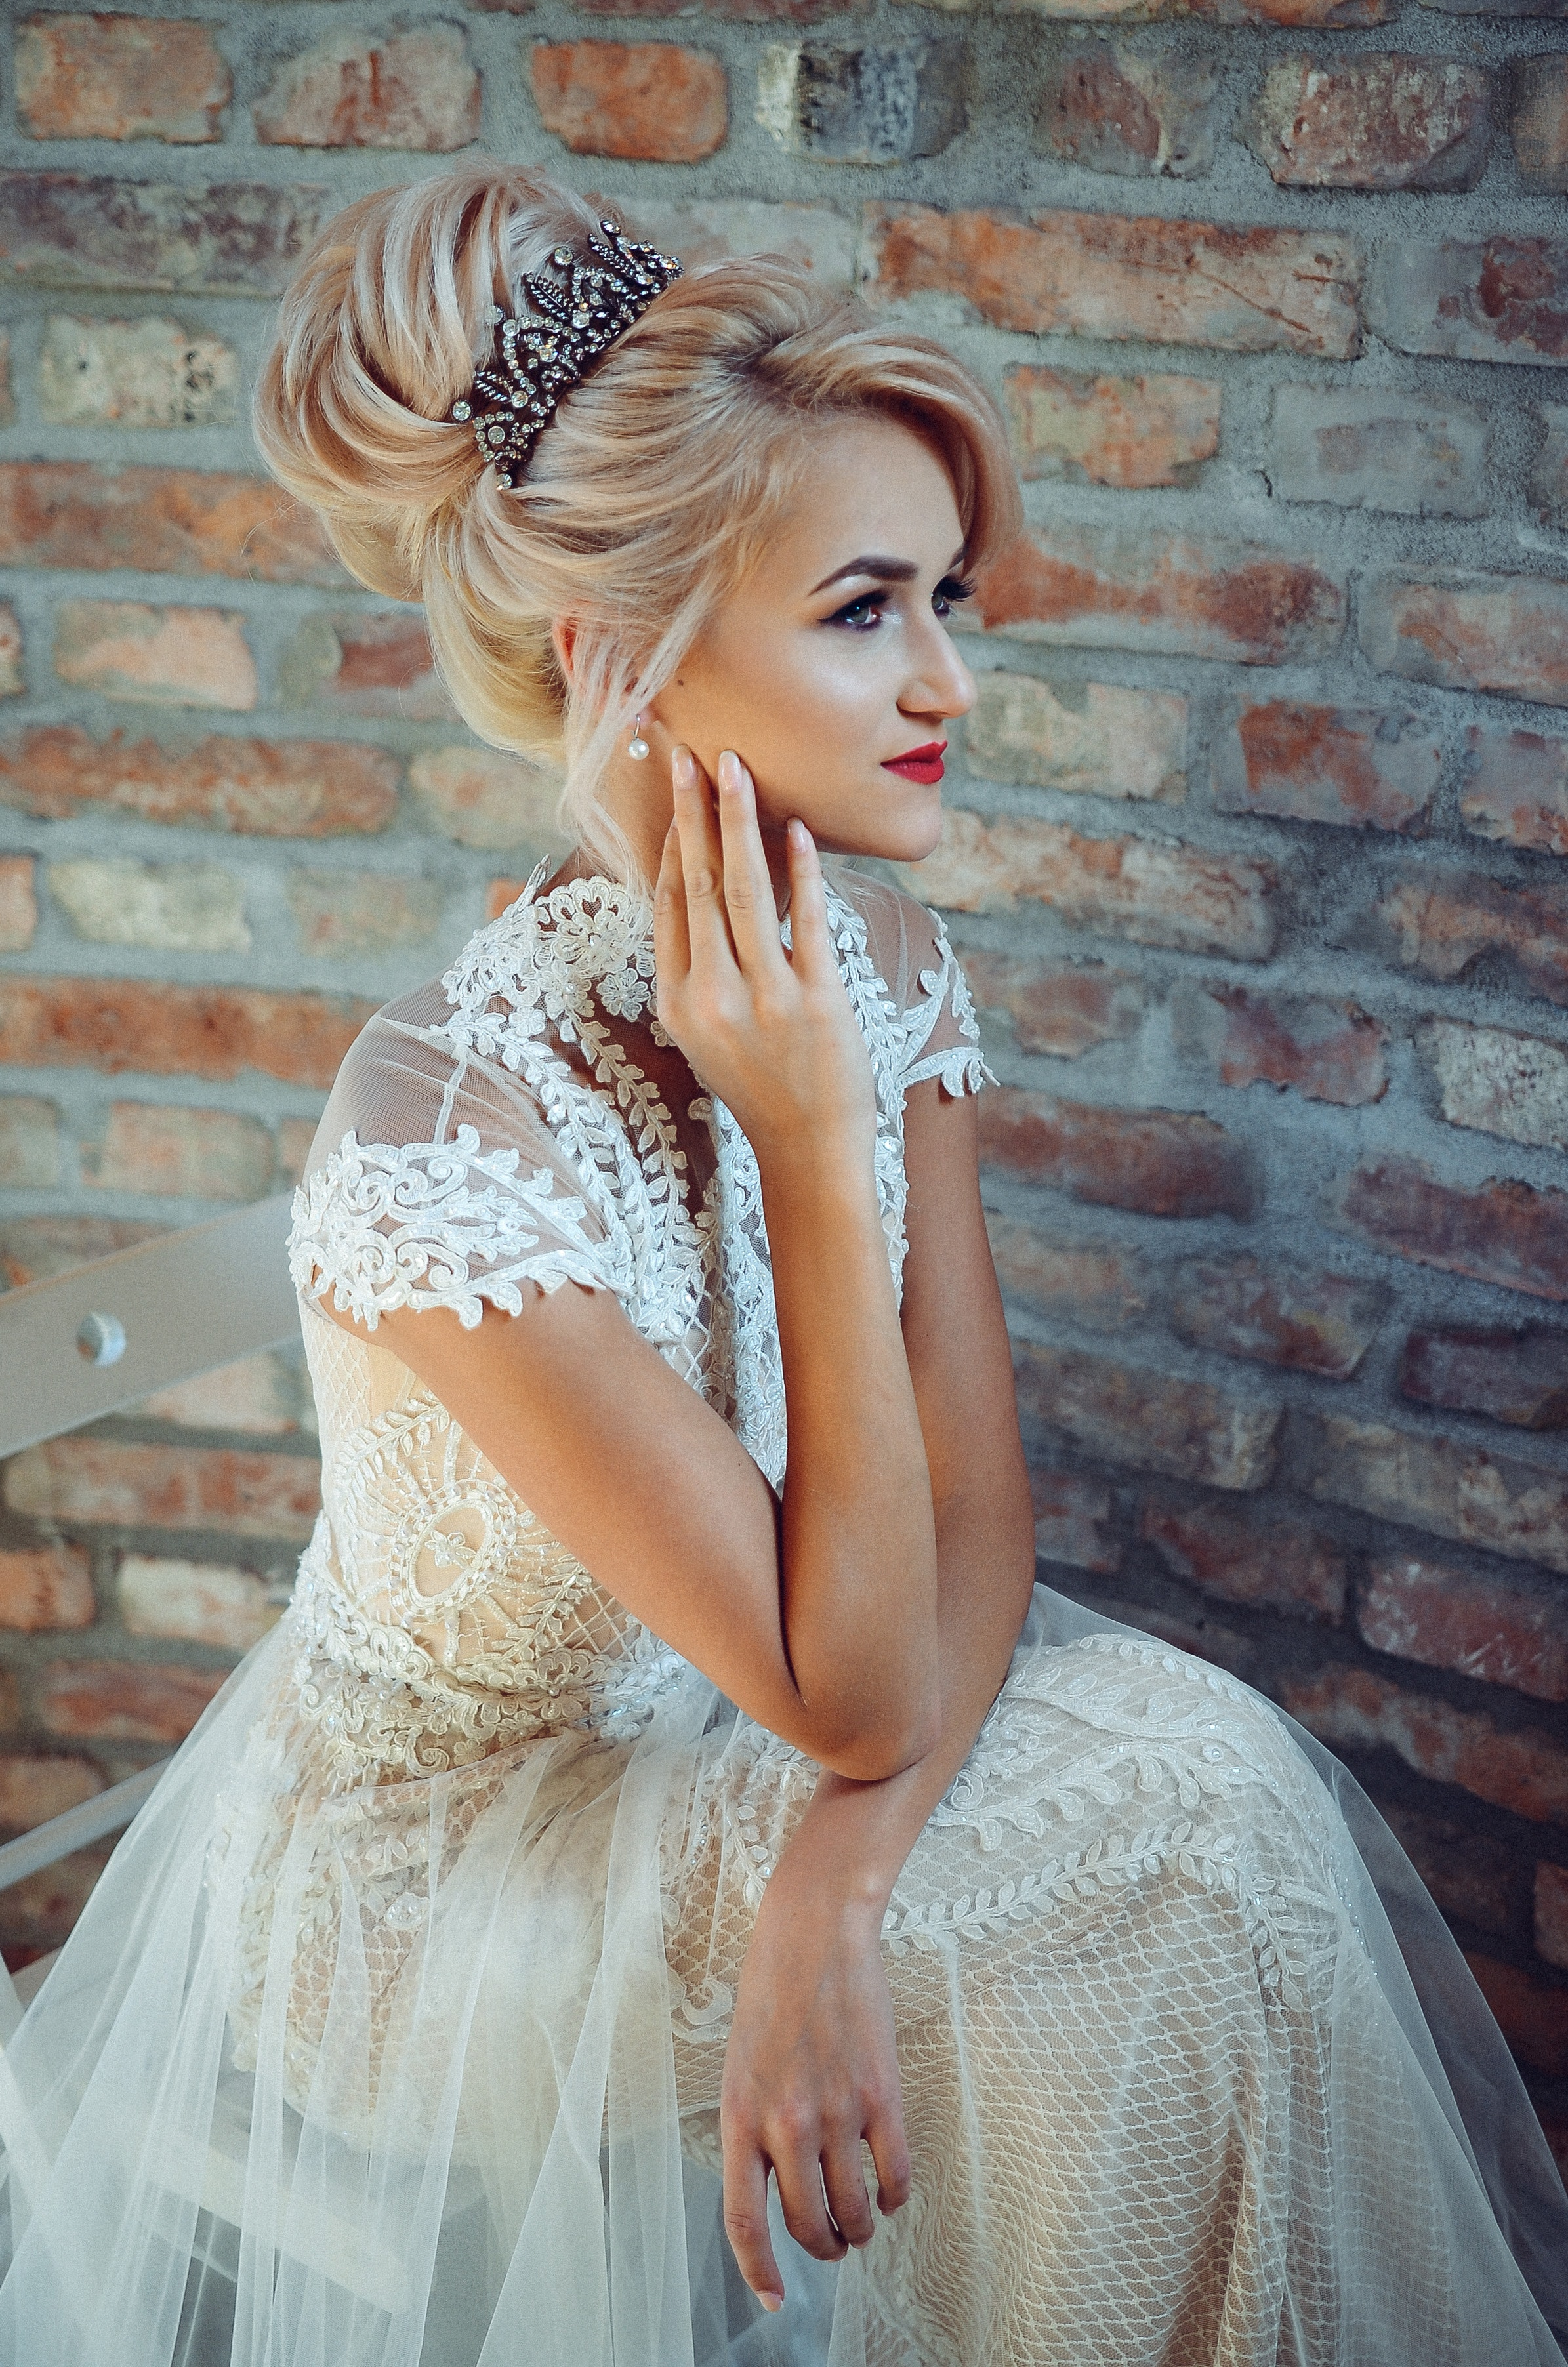 Woman in White Lace Dress Sits on Chair, Attractive, Hairstyle, Wear, Style, HQ Photo